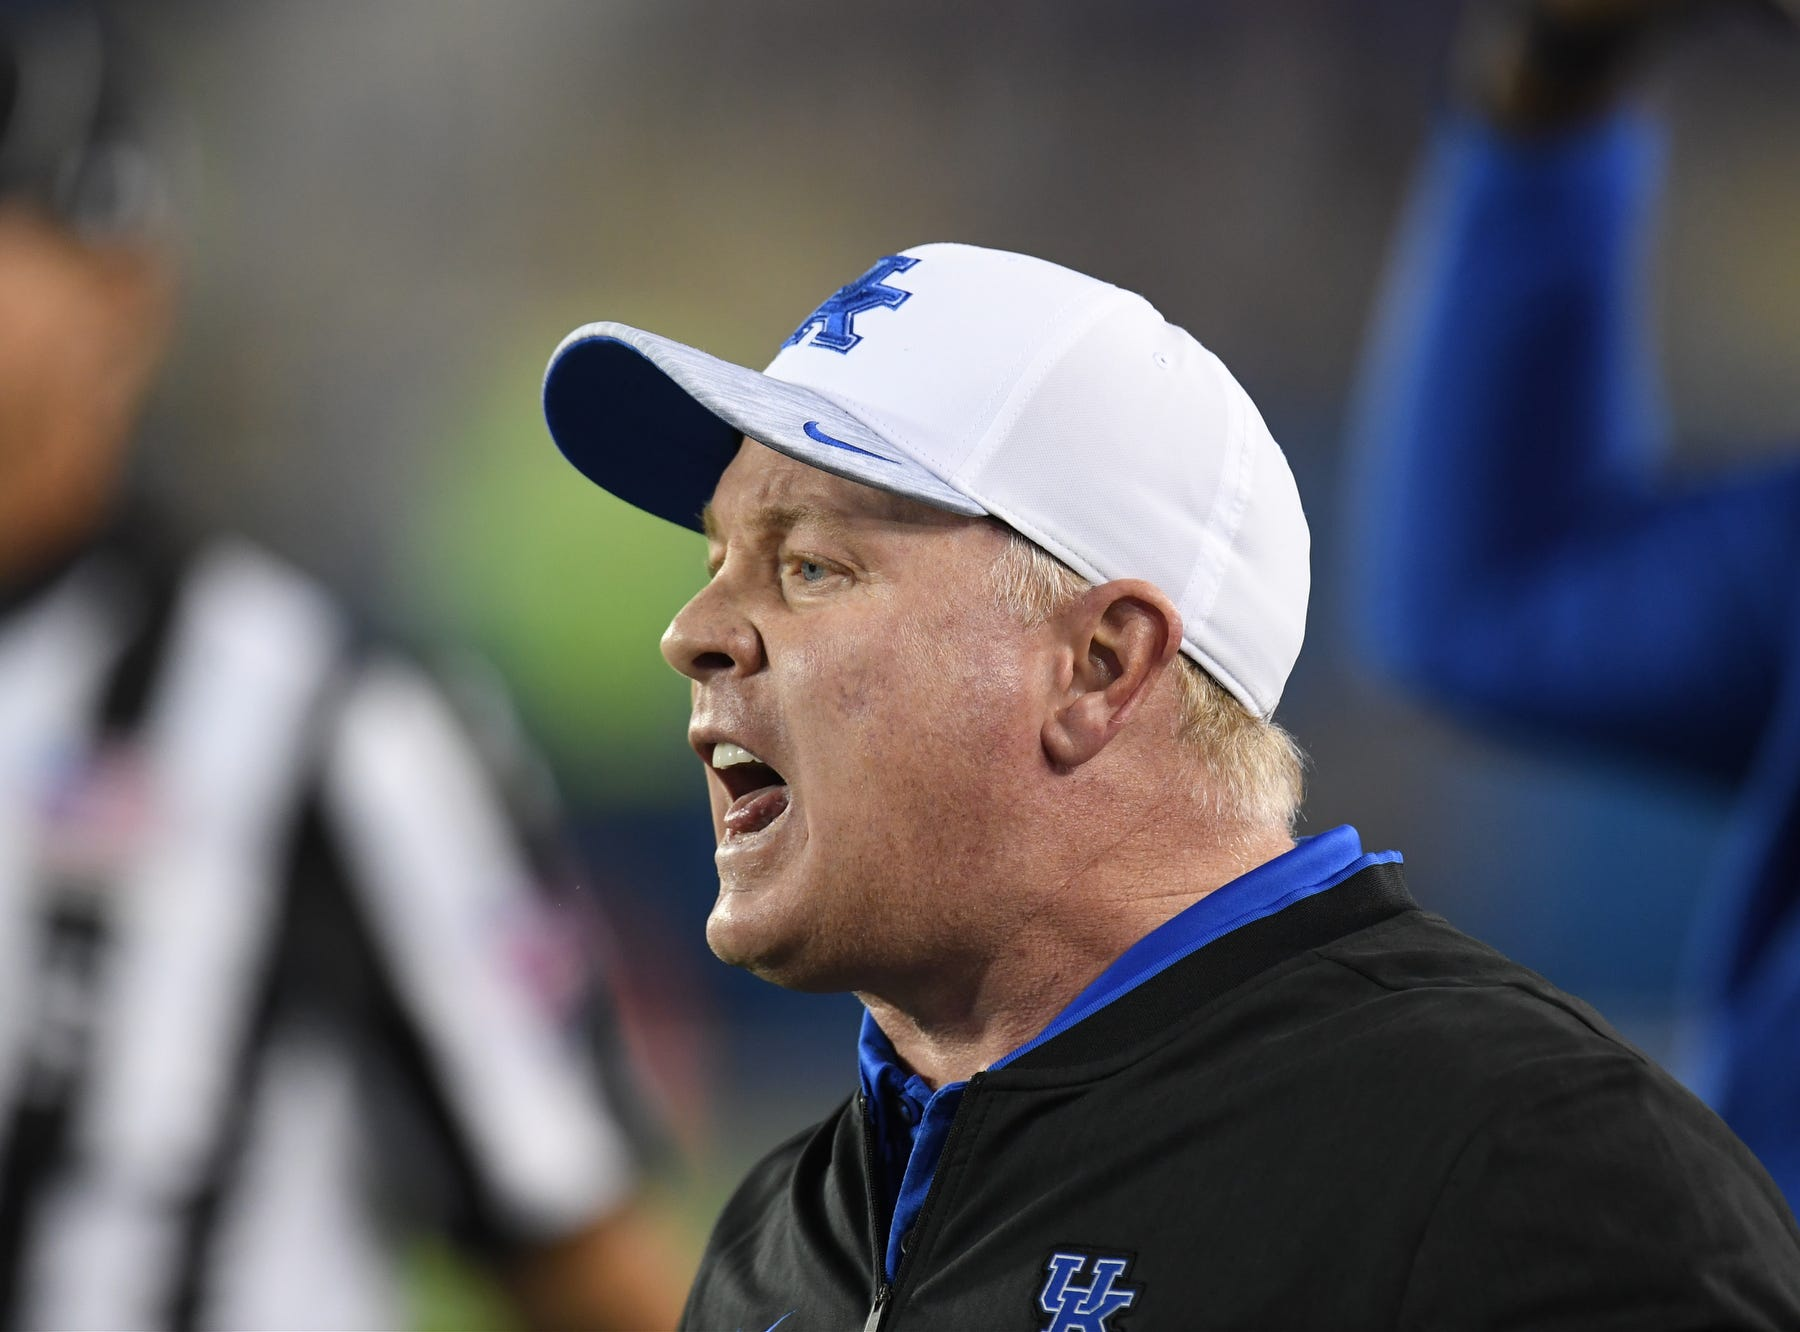 UK head coach Mark Stoops during the University of Kentucky football game against South Carolina at Kroger Field in Lexington, Kentucky on Saturday, September 29, 2018.